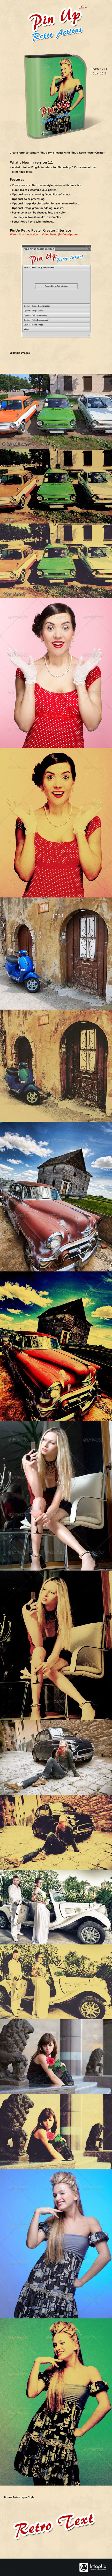 Pin-Up Retro Poster Creator - Create retro stylized image effects.